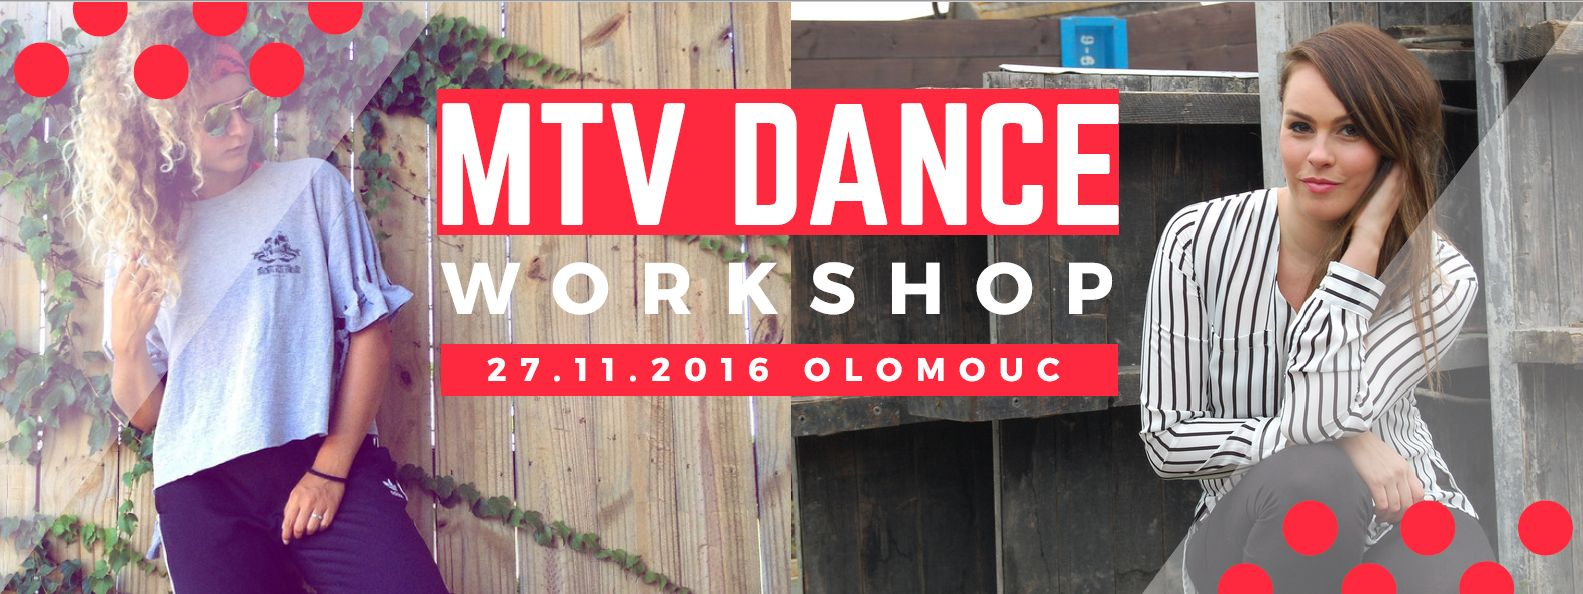 MTV Dance Workshop v 331 Dance Studiu Olomouc